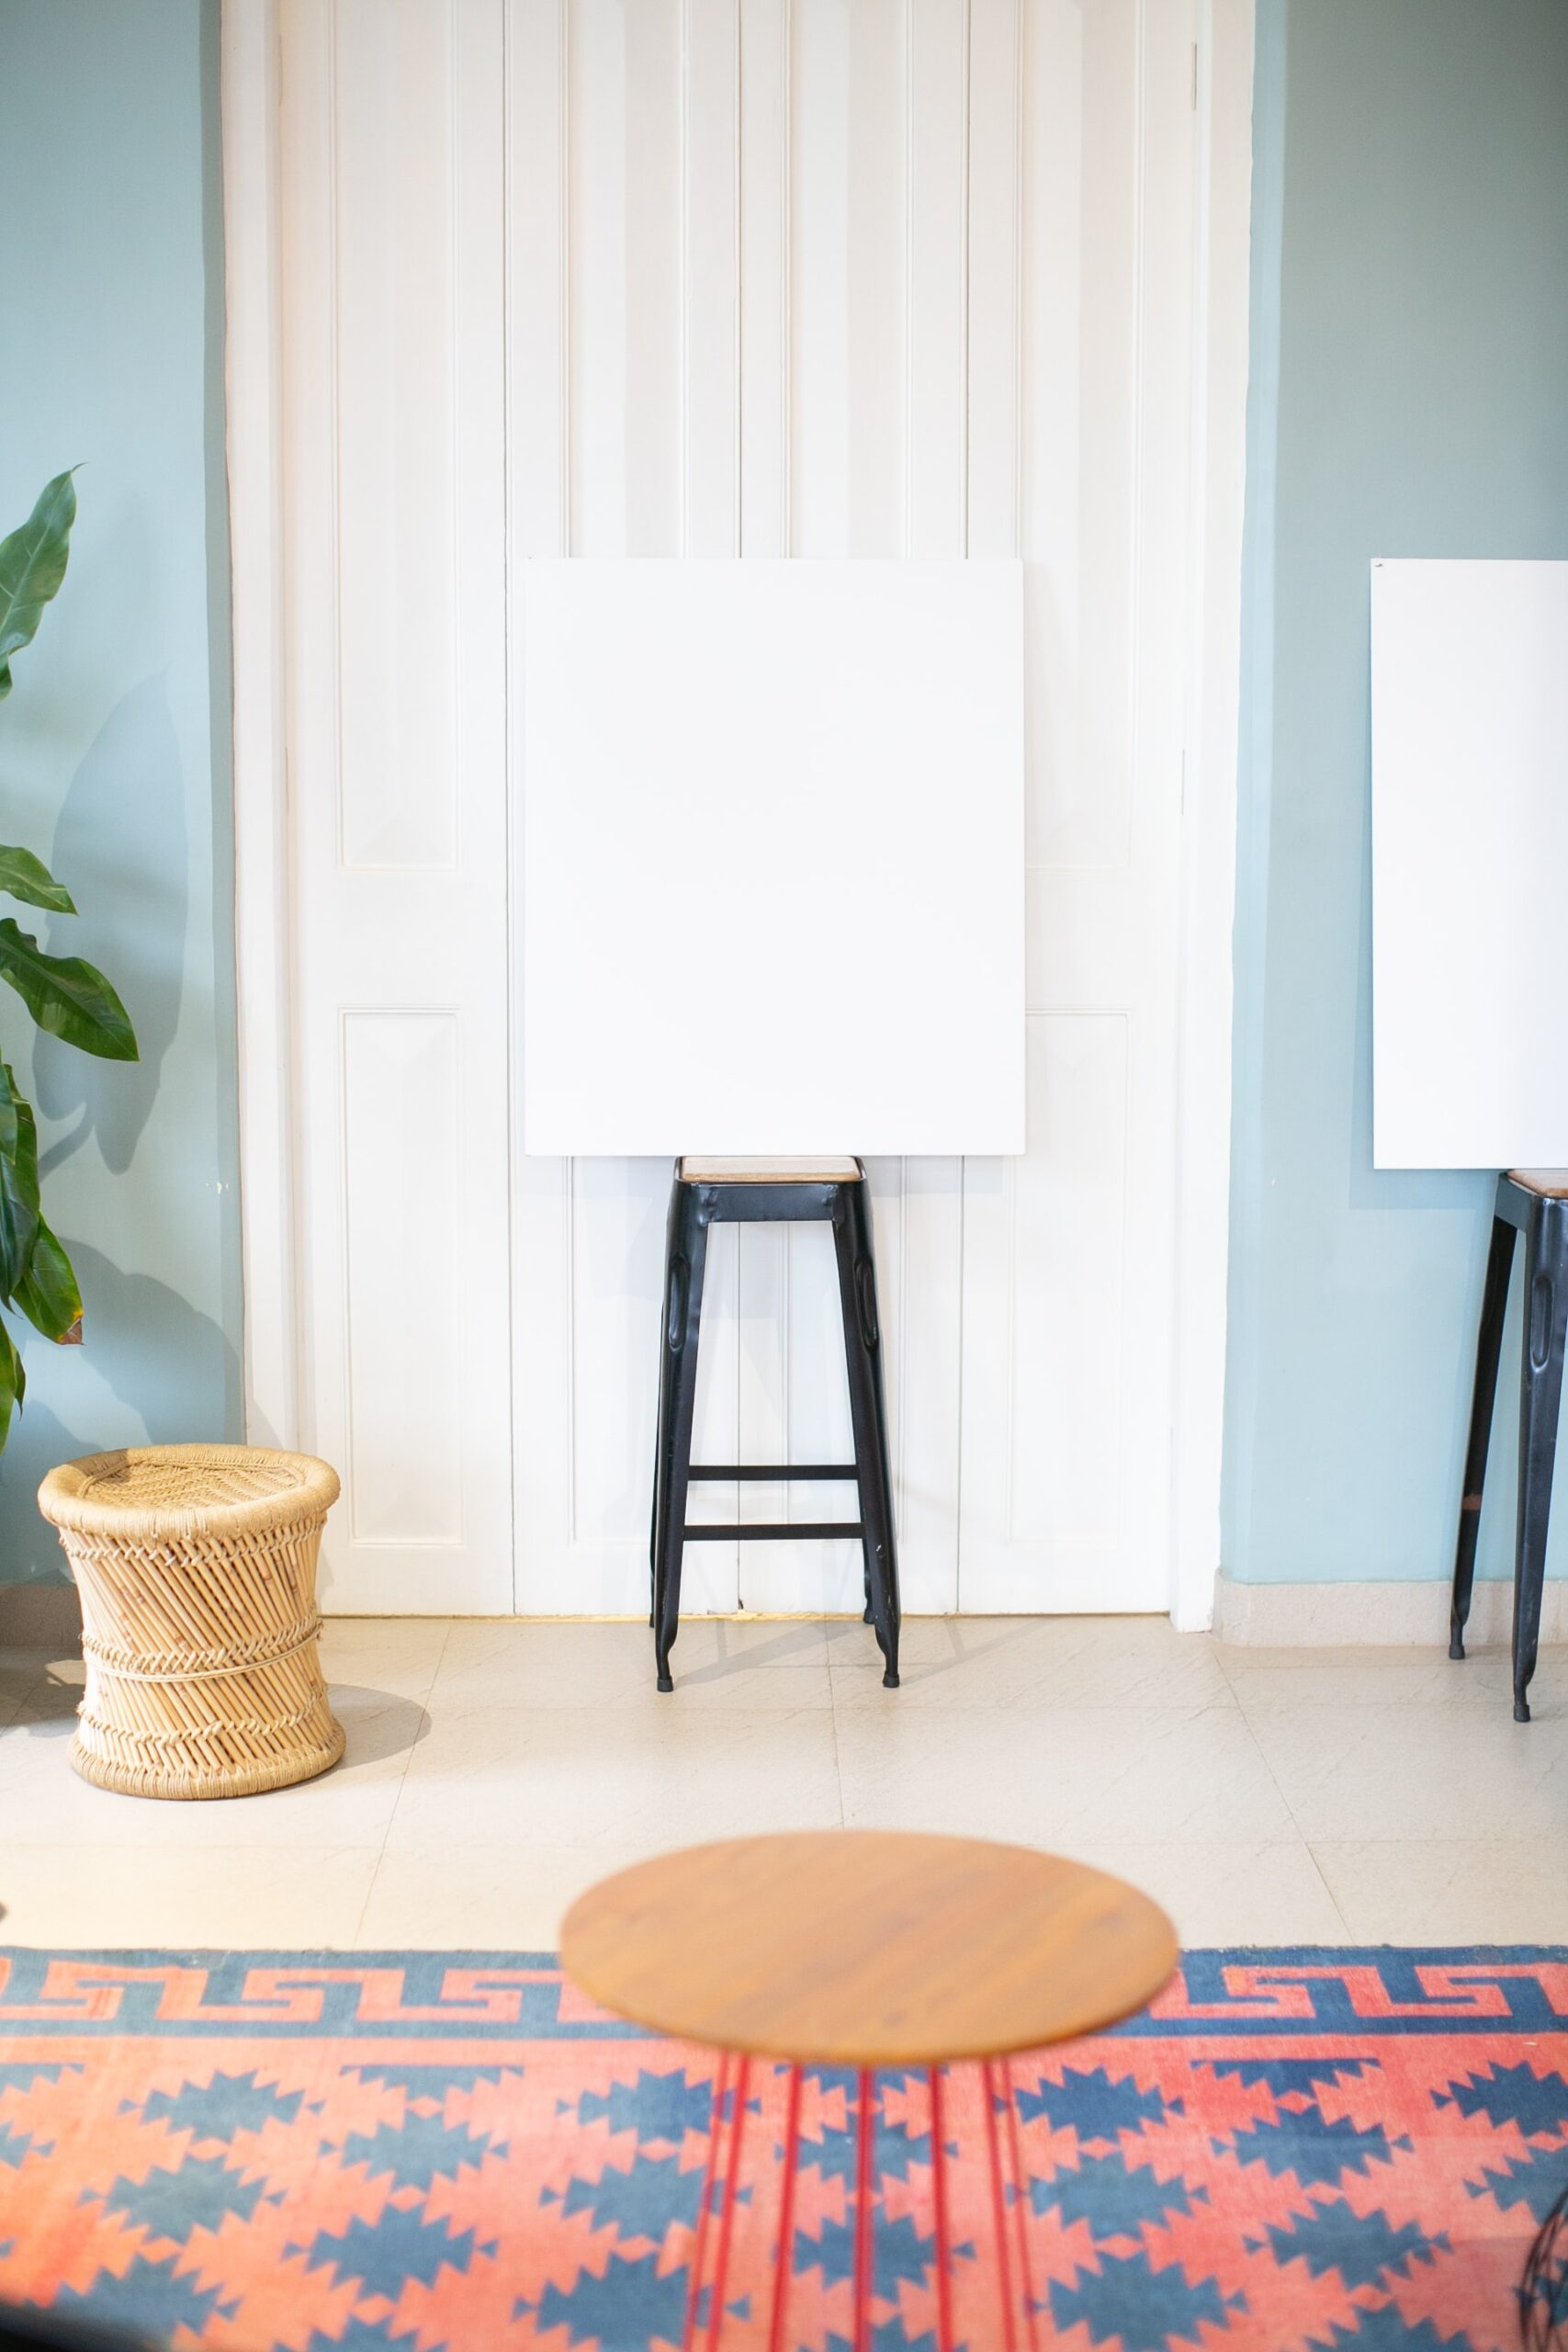 raj-rana-clean whiteboard on a stool in front of a white door-unsplash